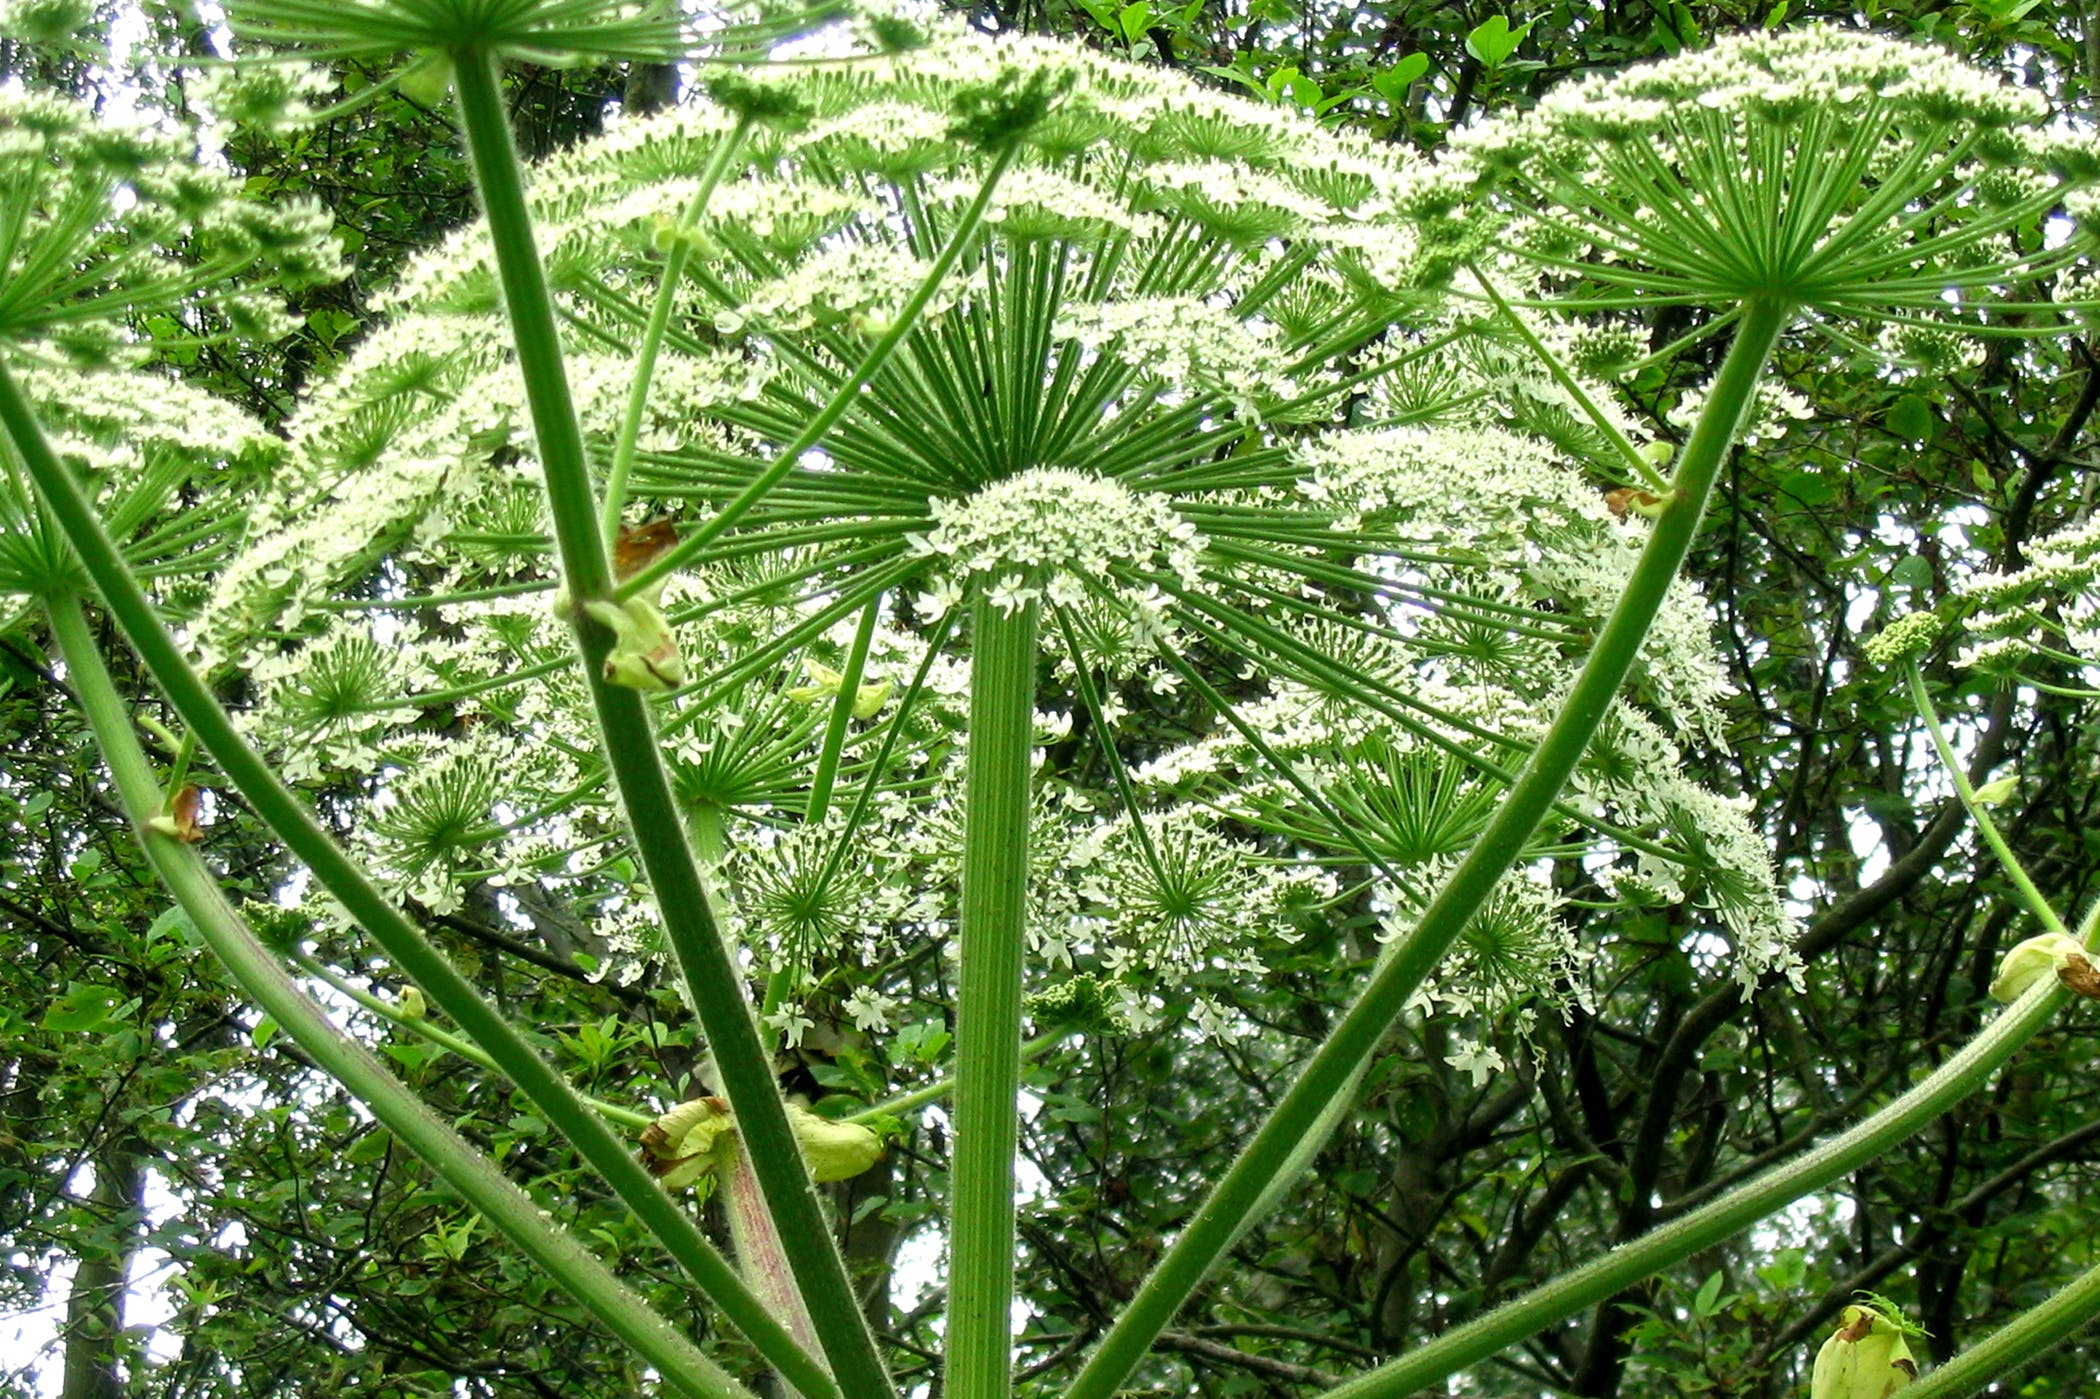 Giant Hog Weed Giant Hogweed Poisoning In Horses - Symptoms, Causes